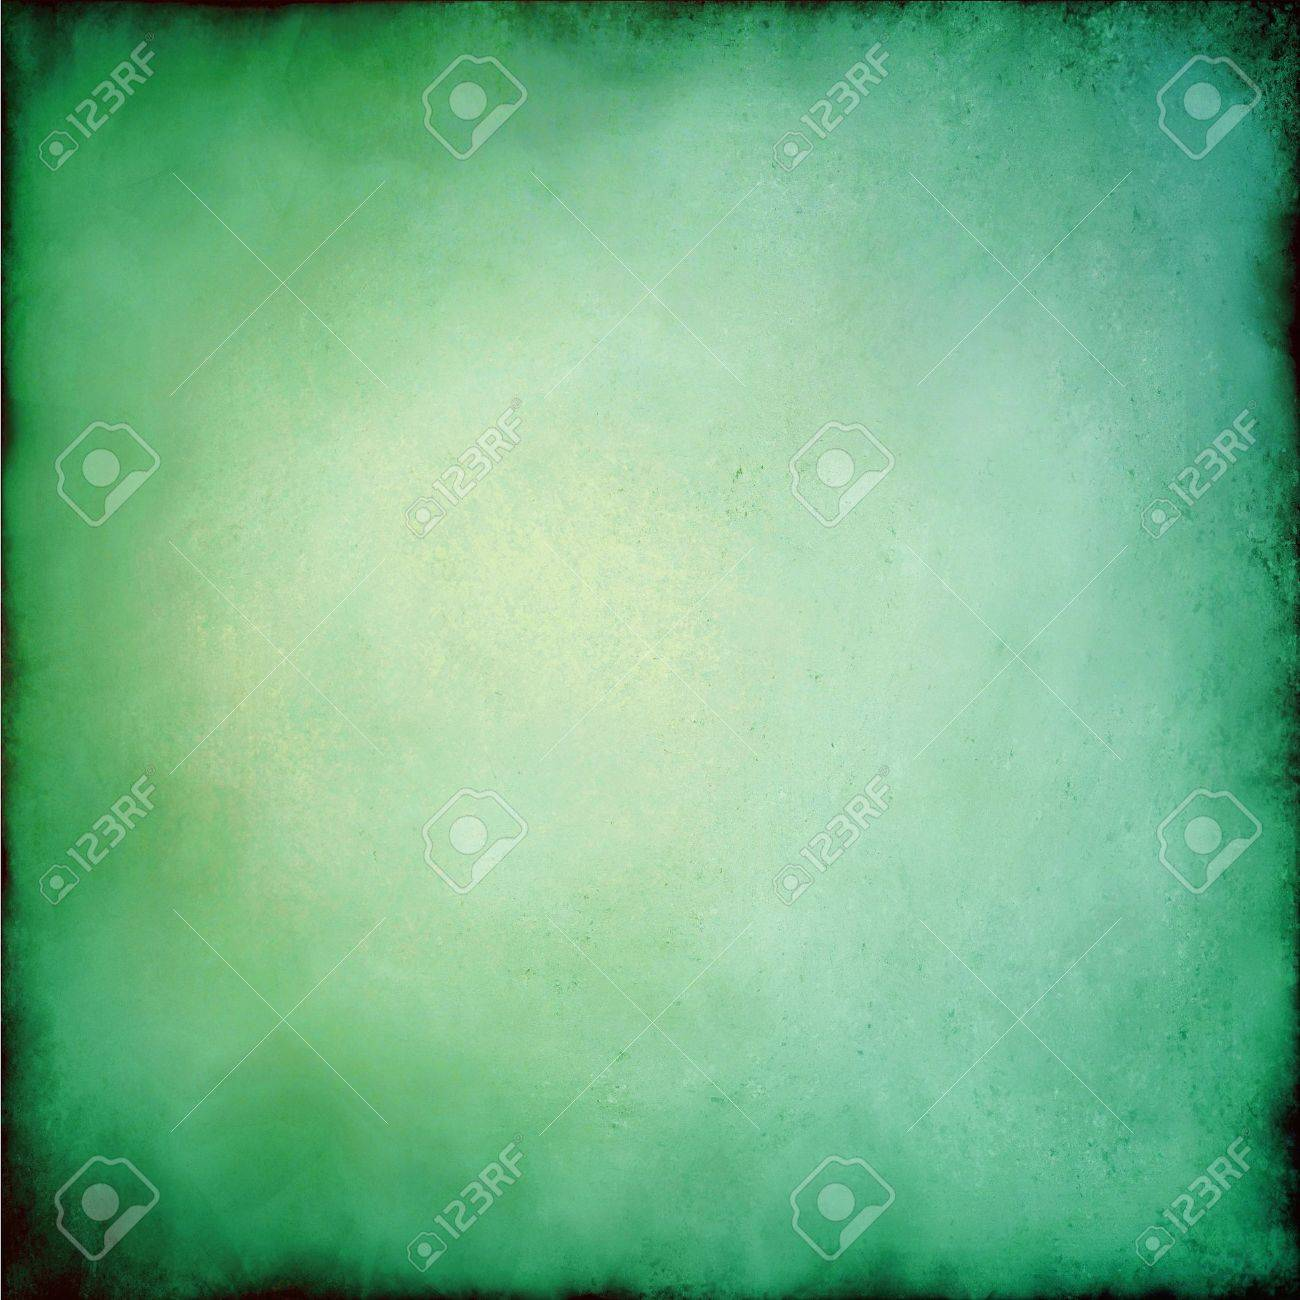 abstract green background or teal blue Stock Photo - 16609727